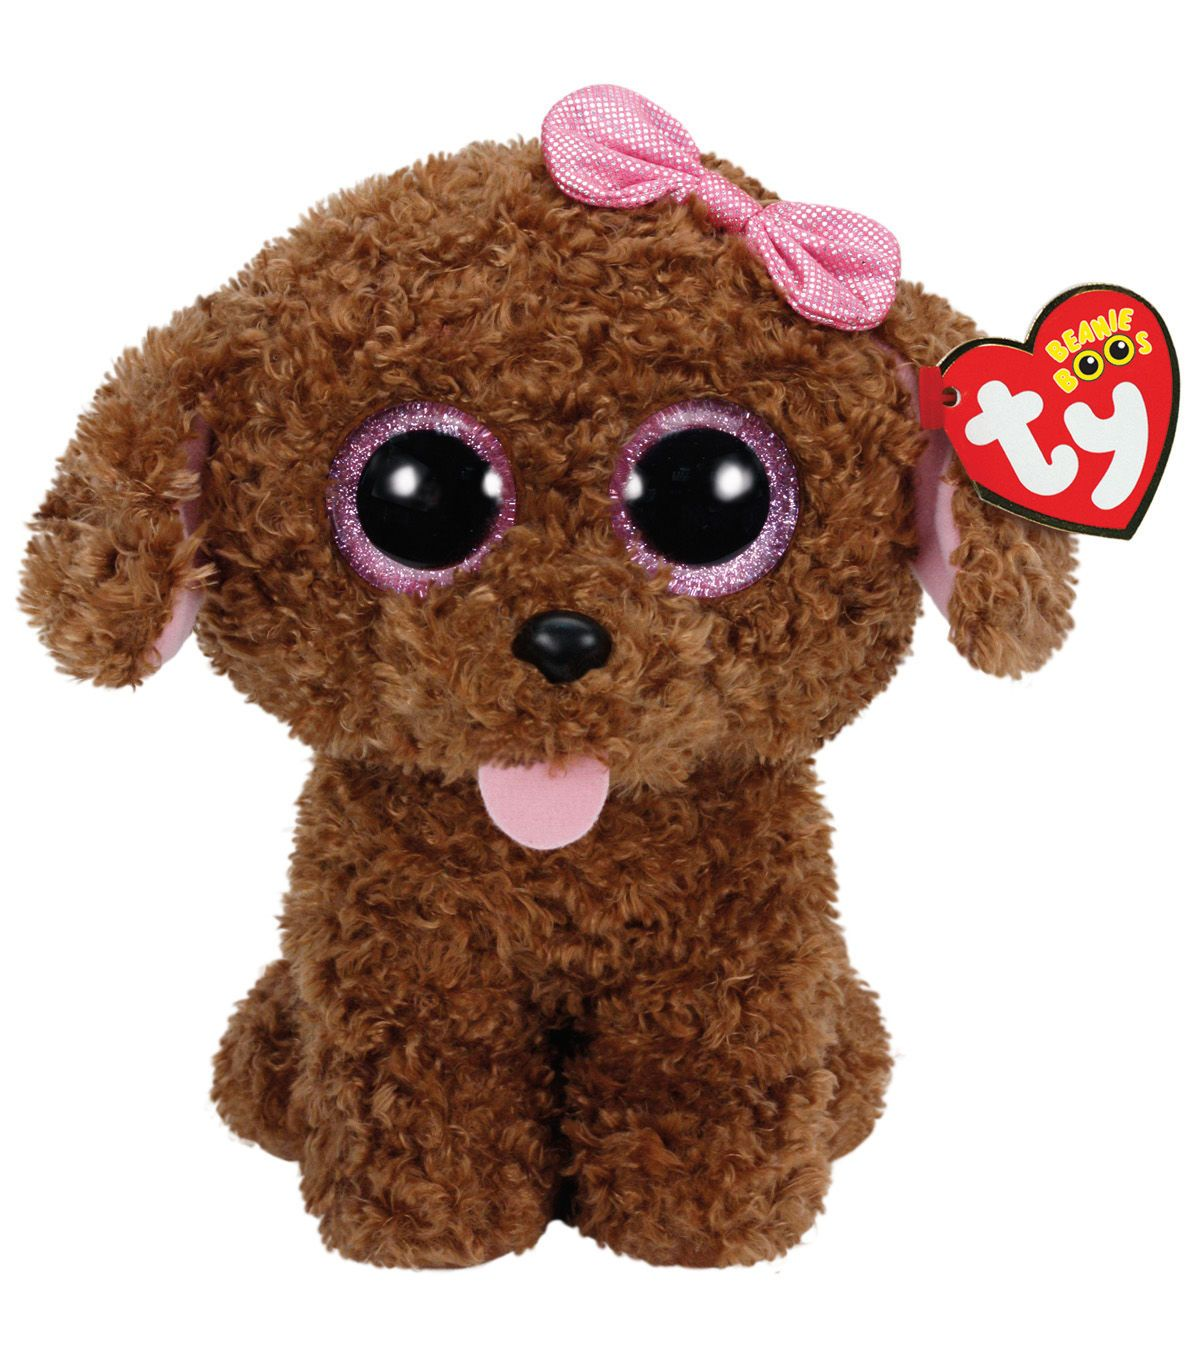 Ty Beanie Boos Maddie The Brown Dog with Bow Plush  06ba216ca718